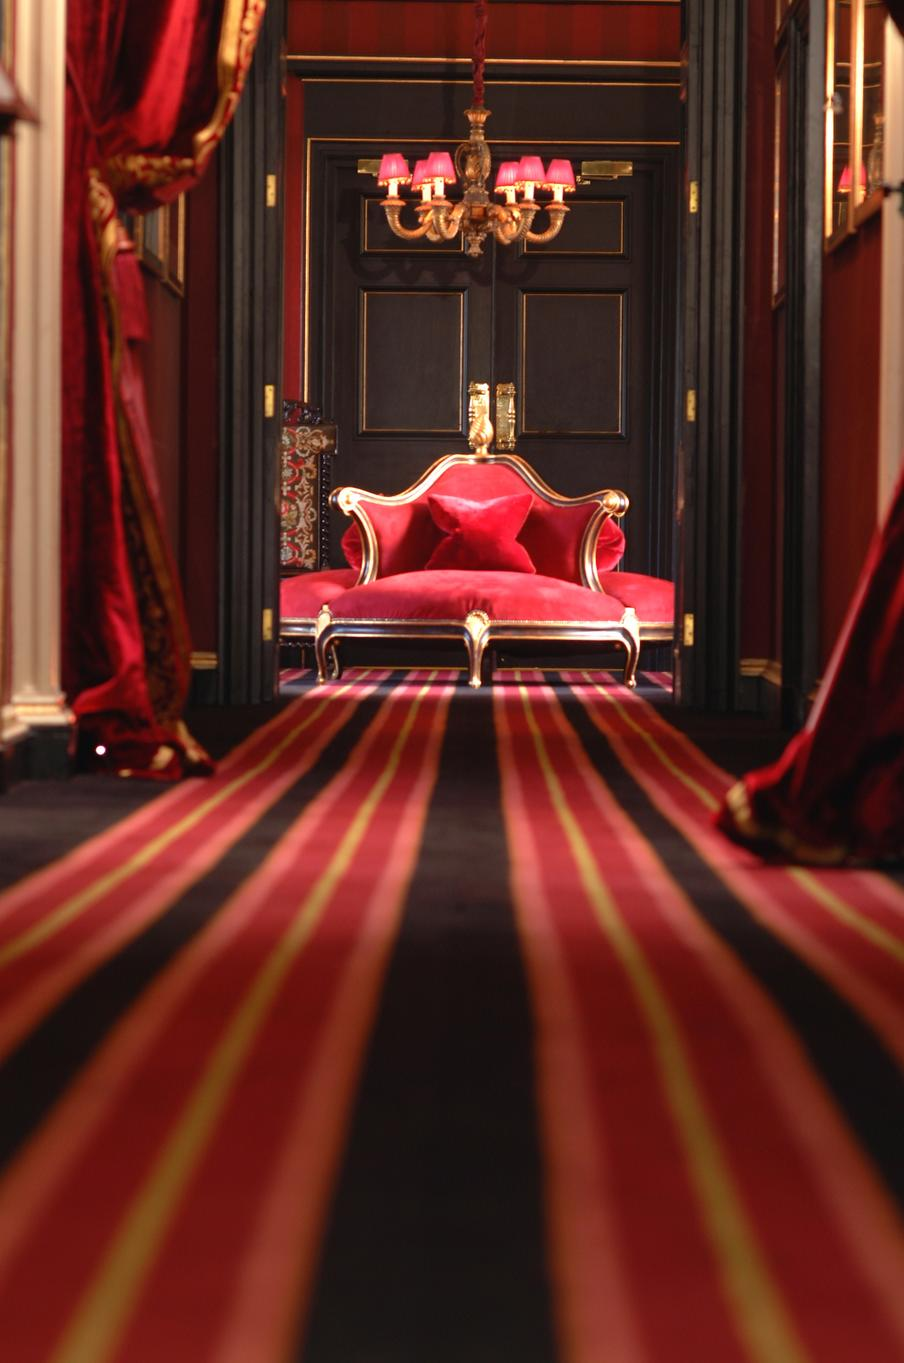 Looking down the hotel corridor to a feature seating area within the reception of the hotel with striped carped with red, black and gold theming